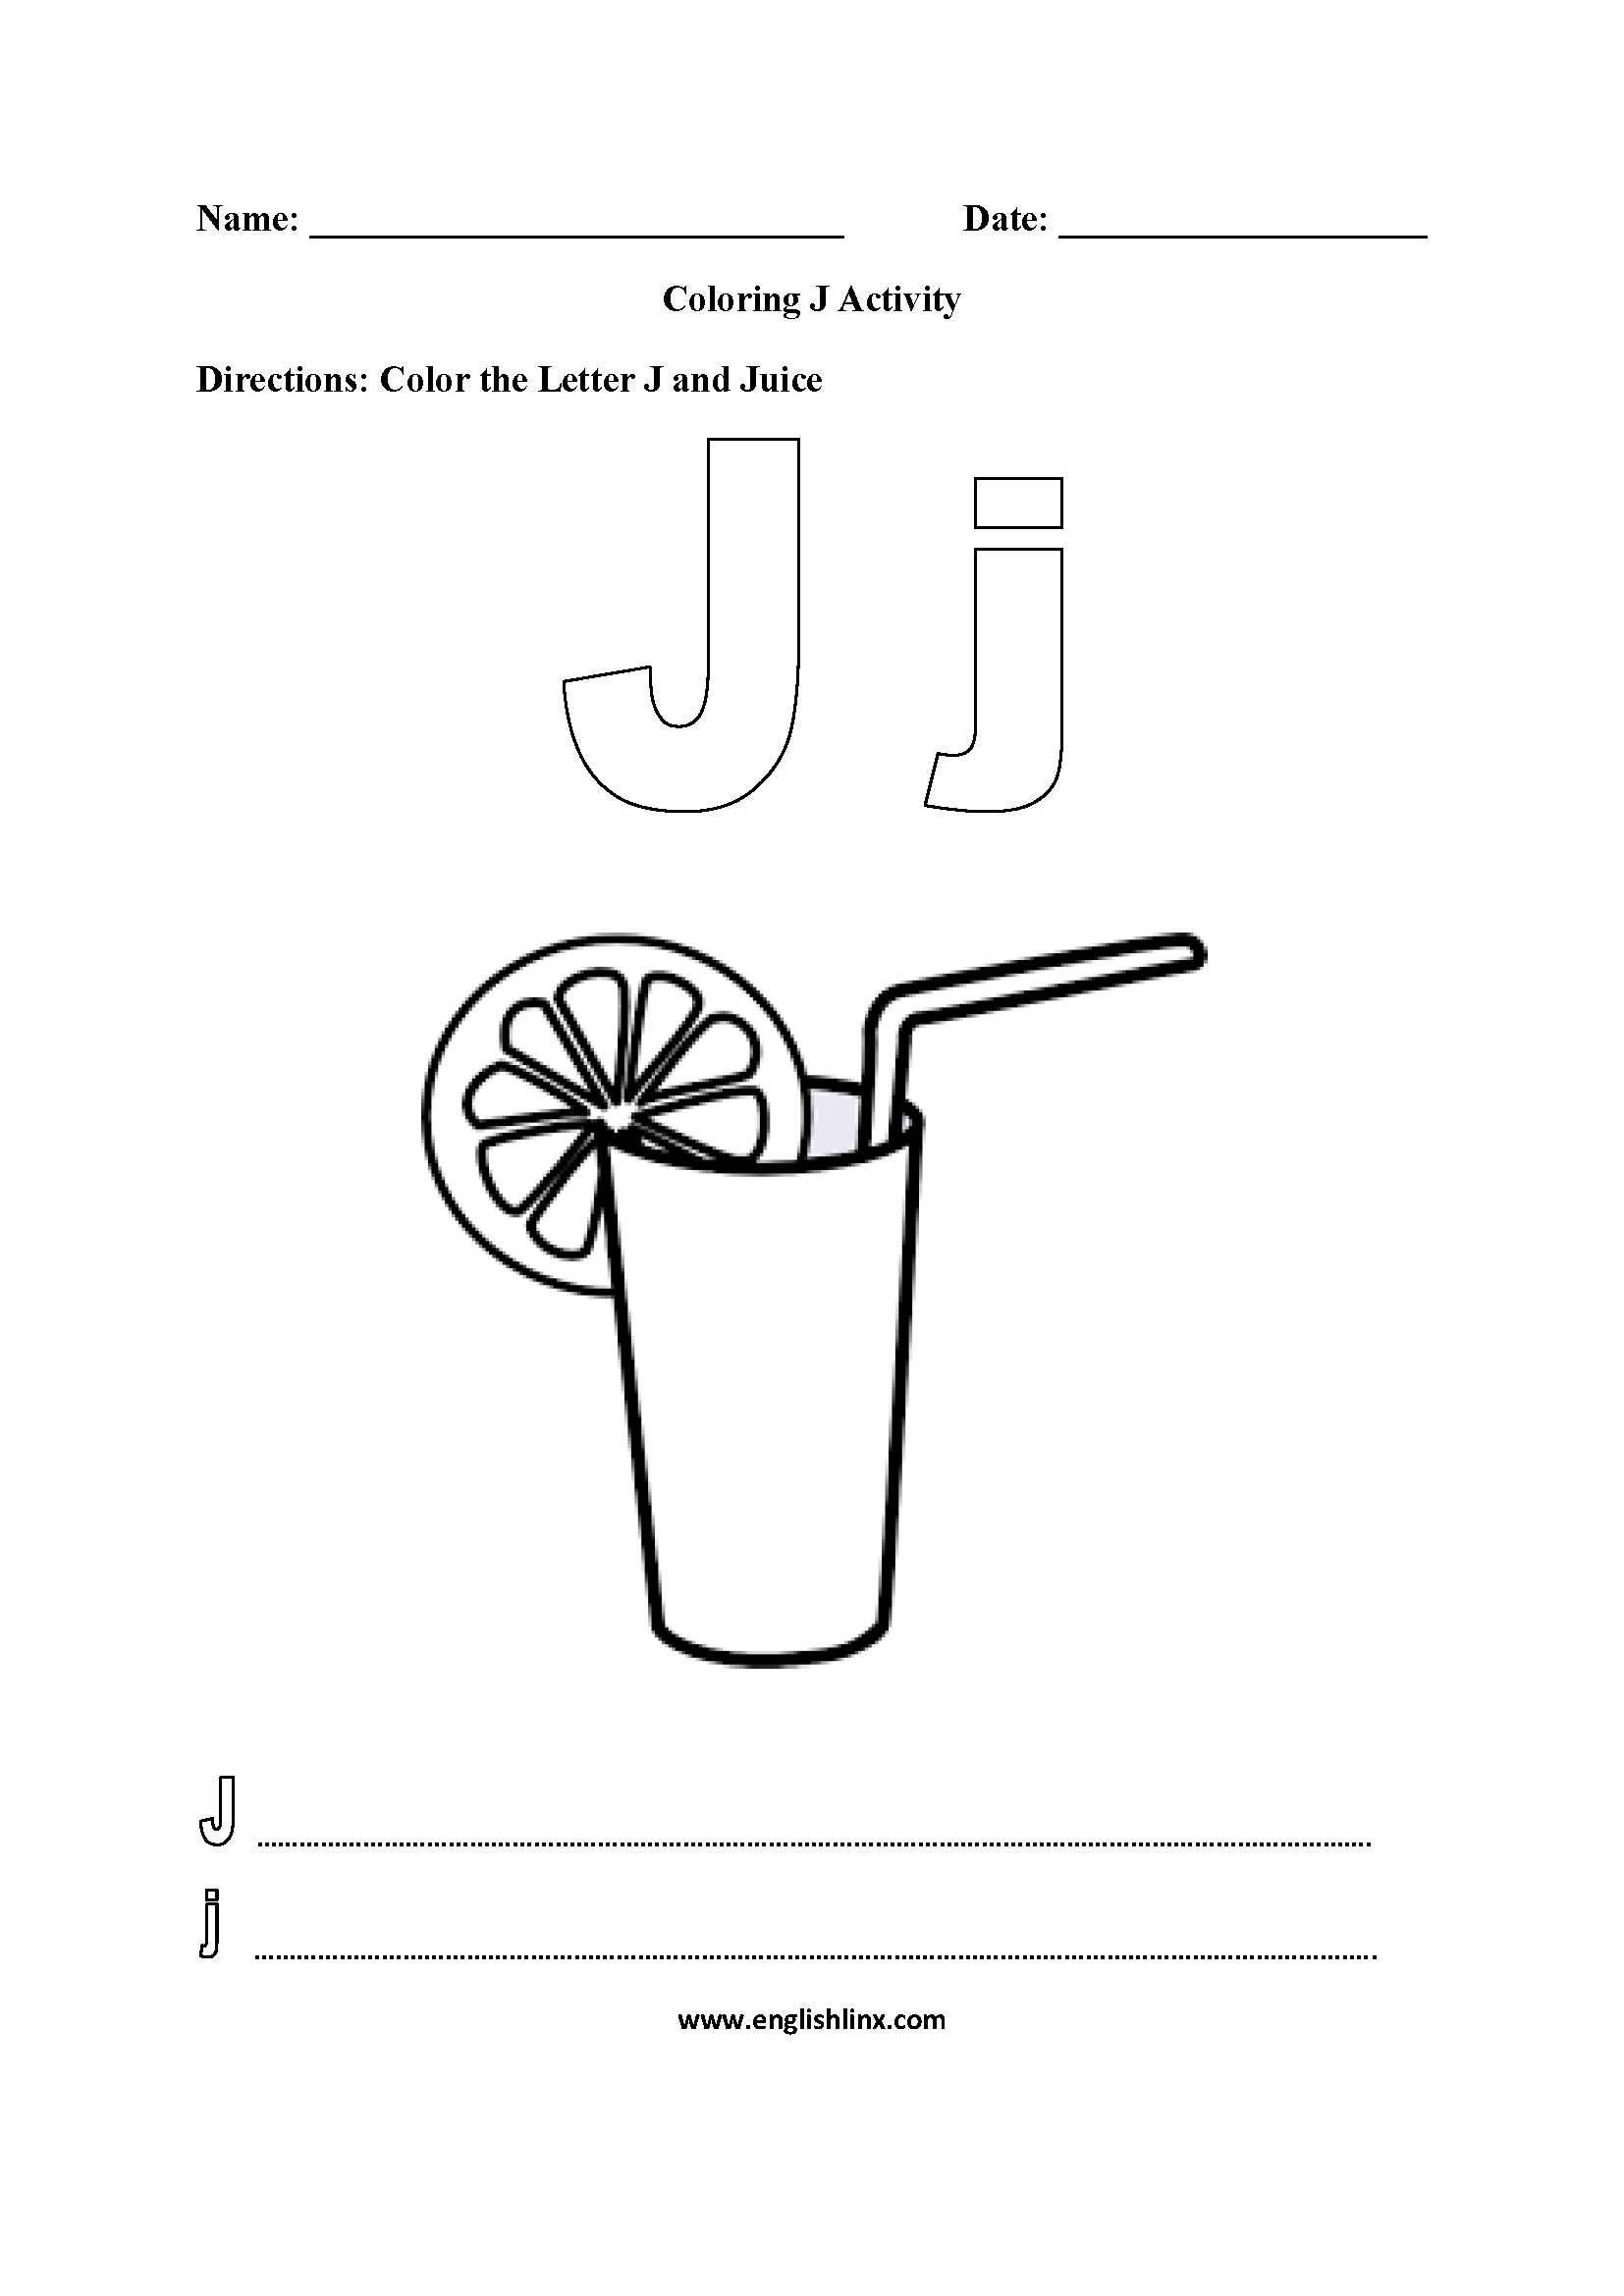 Coloring J Worksheet